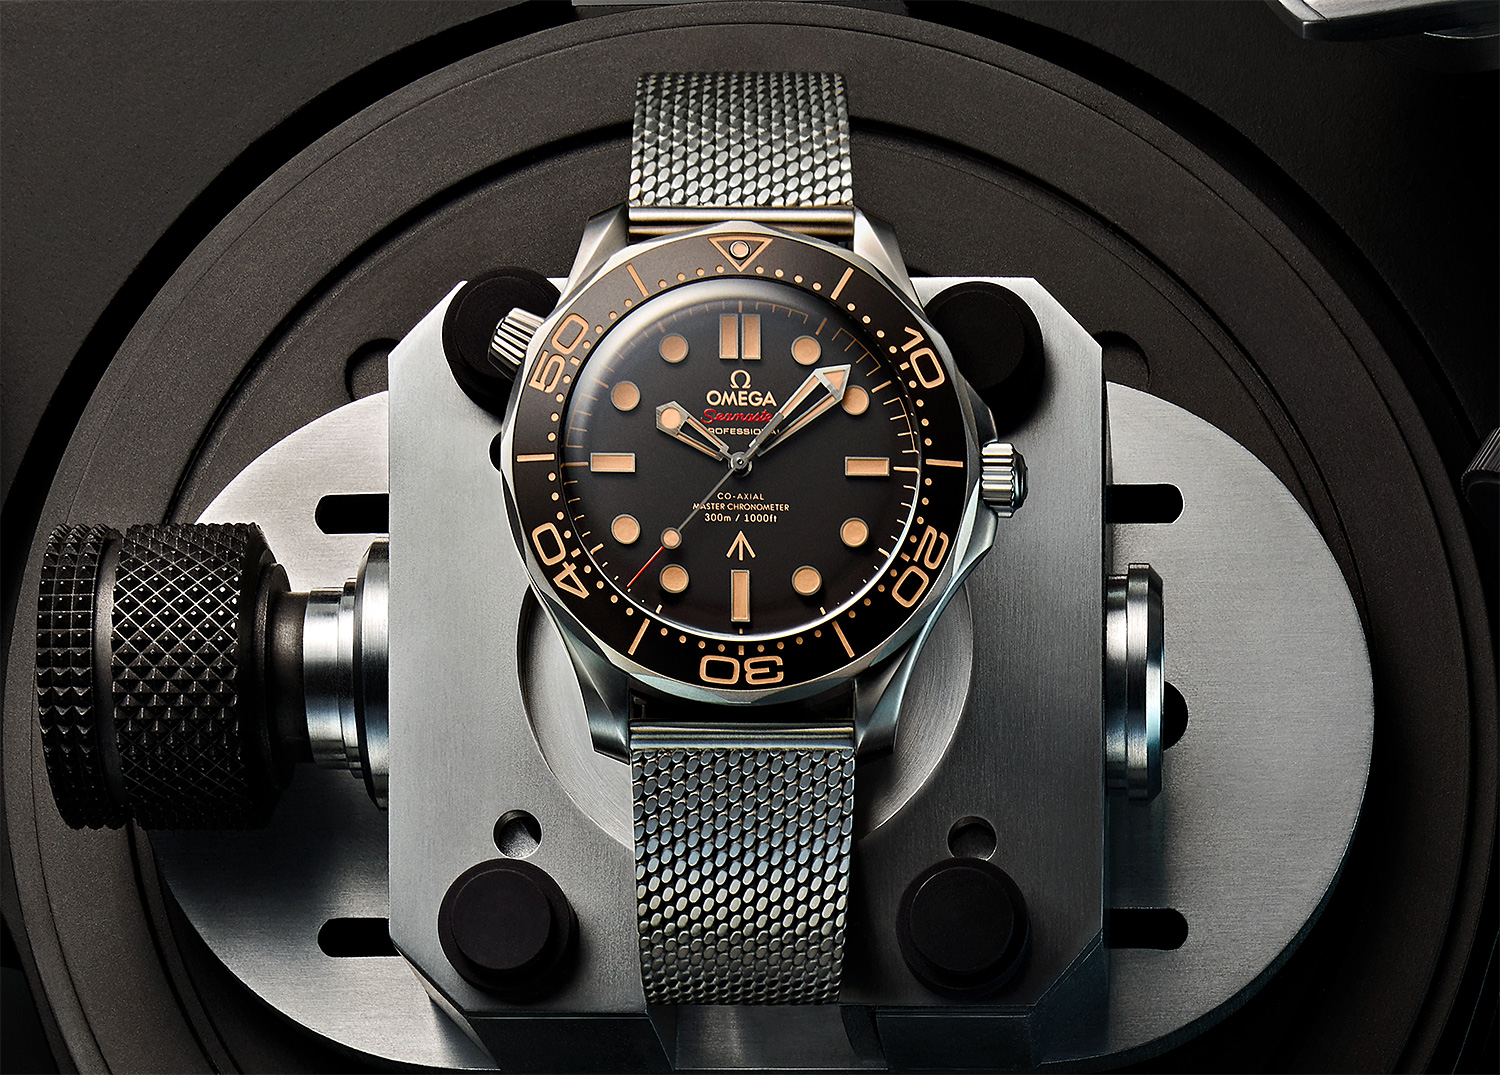 Omega Introduces Limited 007 Seamaster Diver at werd.com